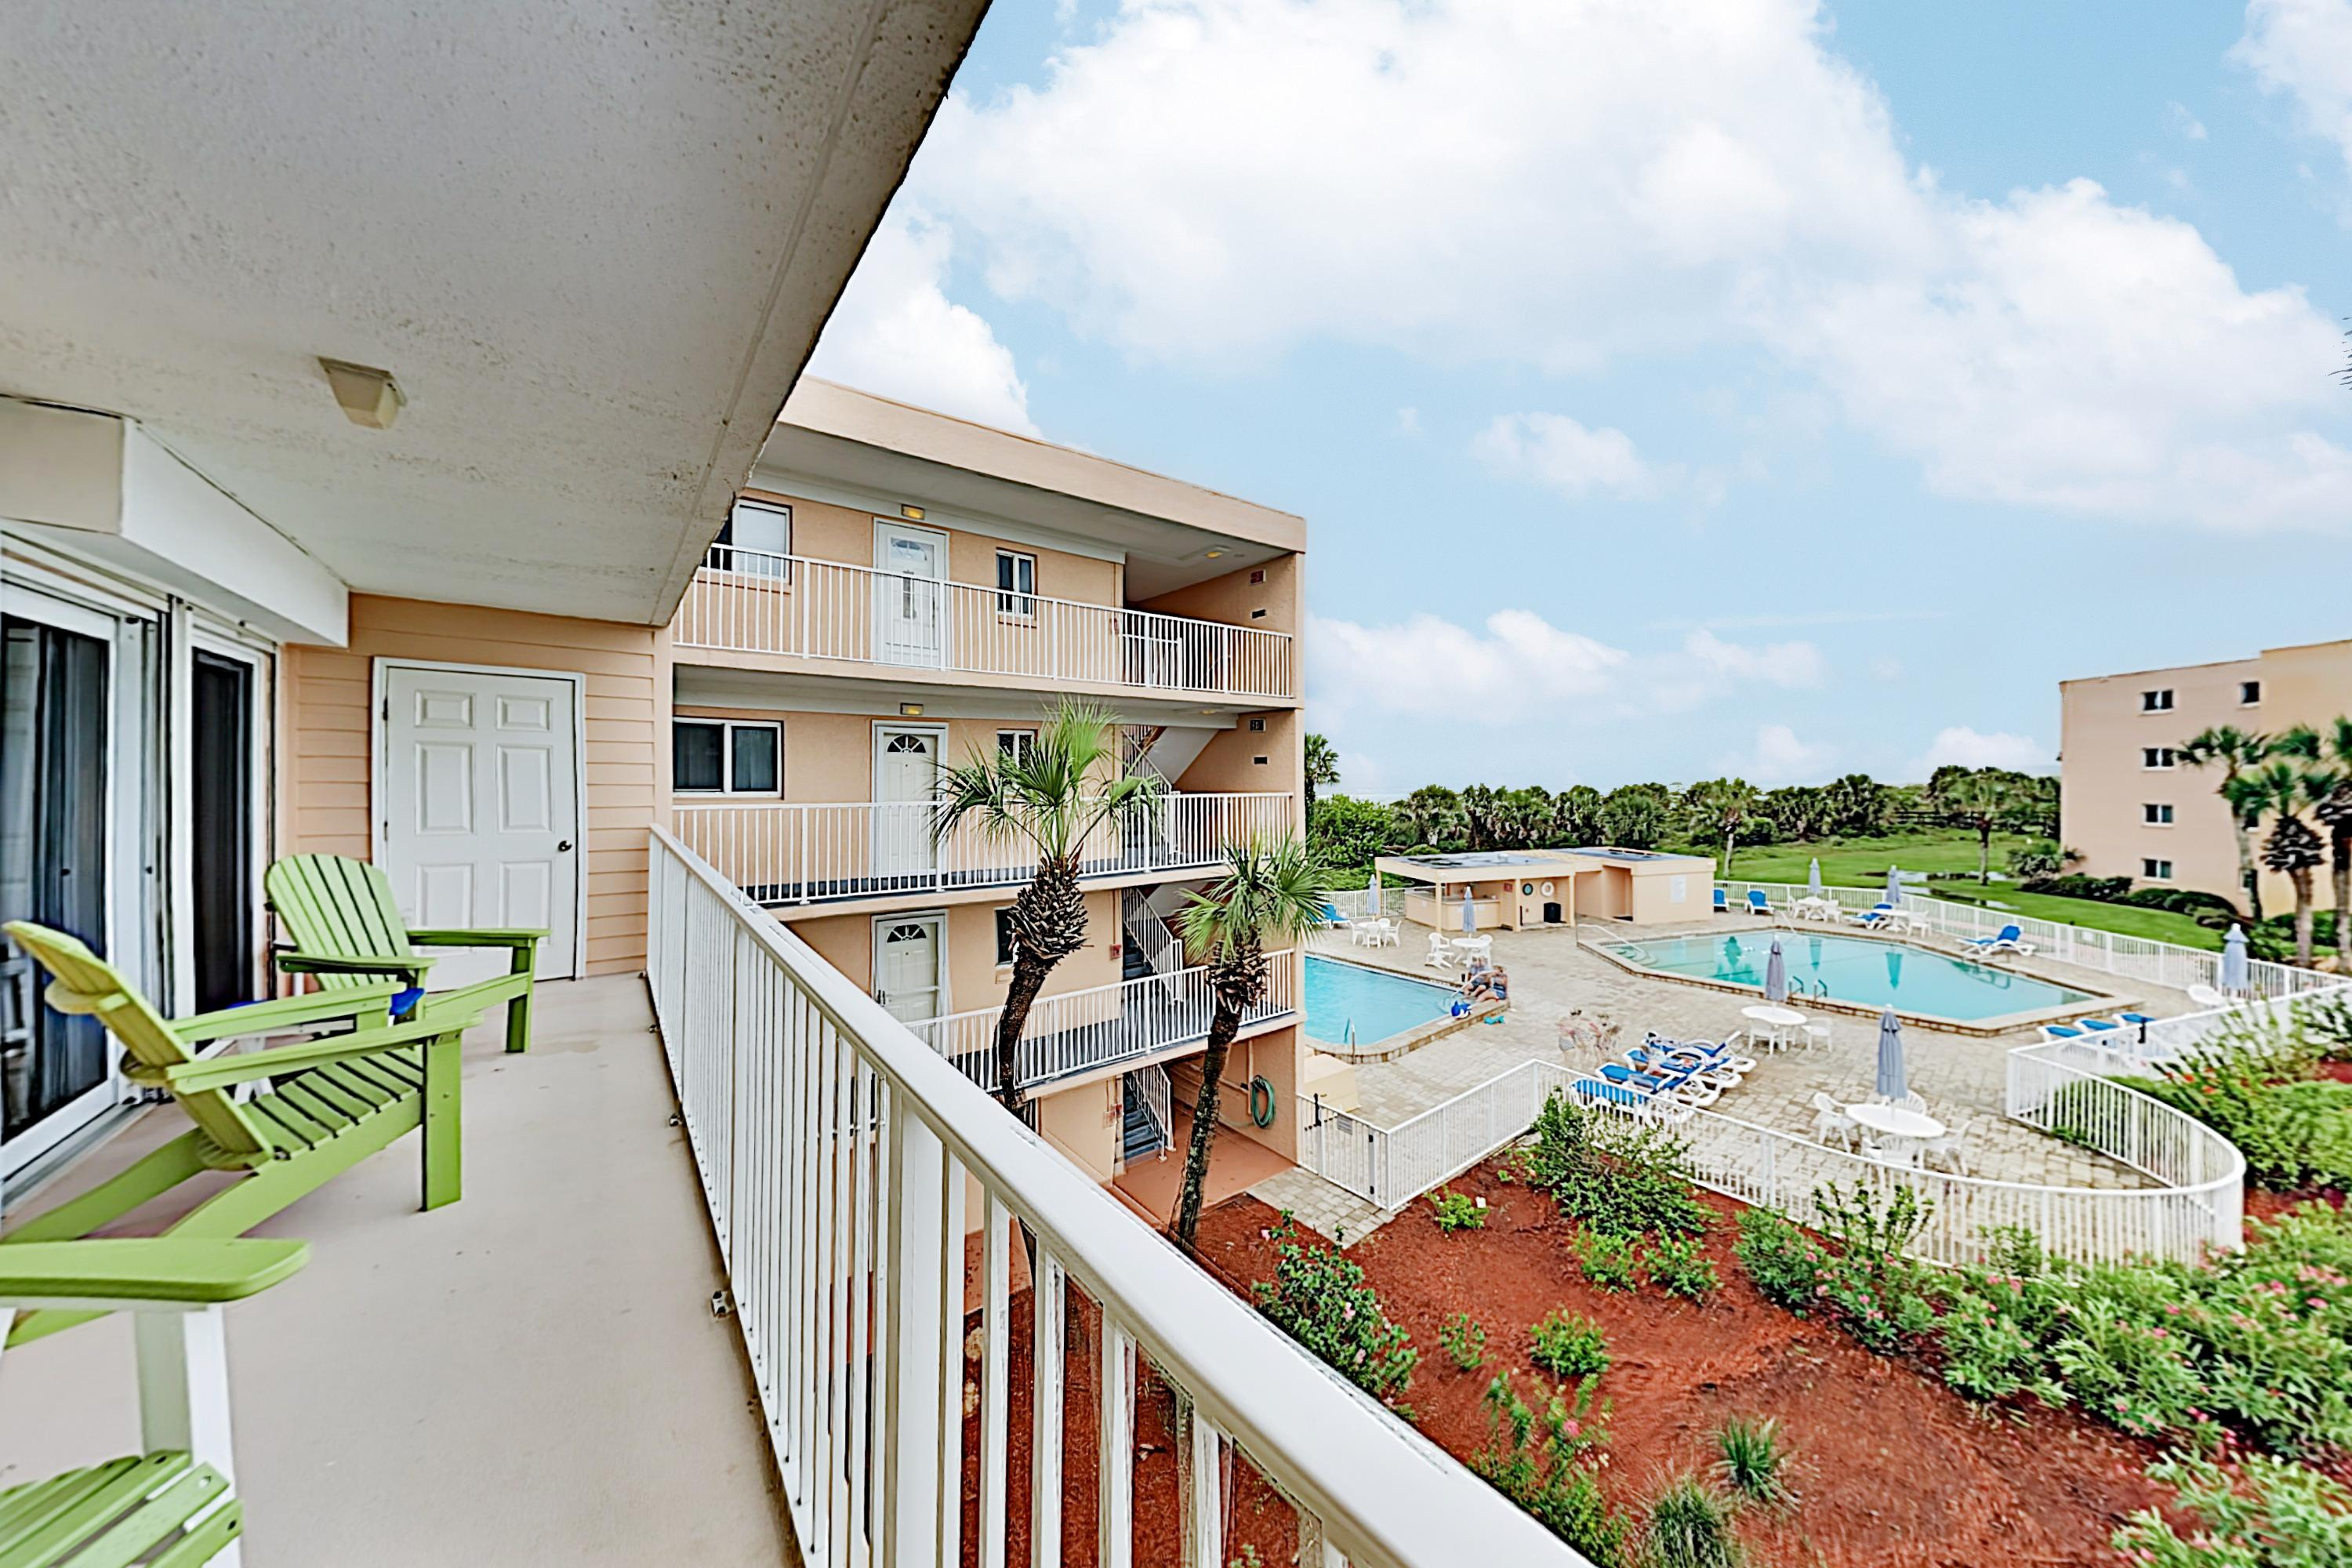 Property Image 1 - Polished Oceanview Condo with Tennis & Racquet Club with Pools